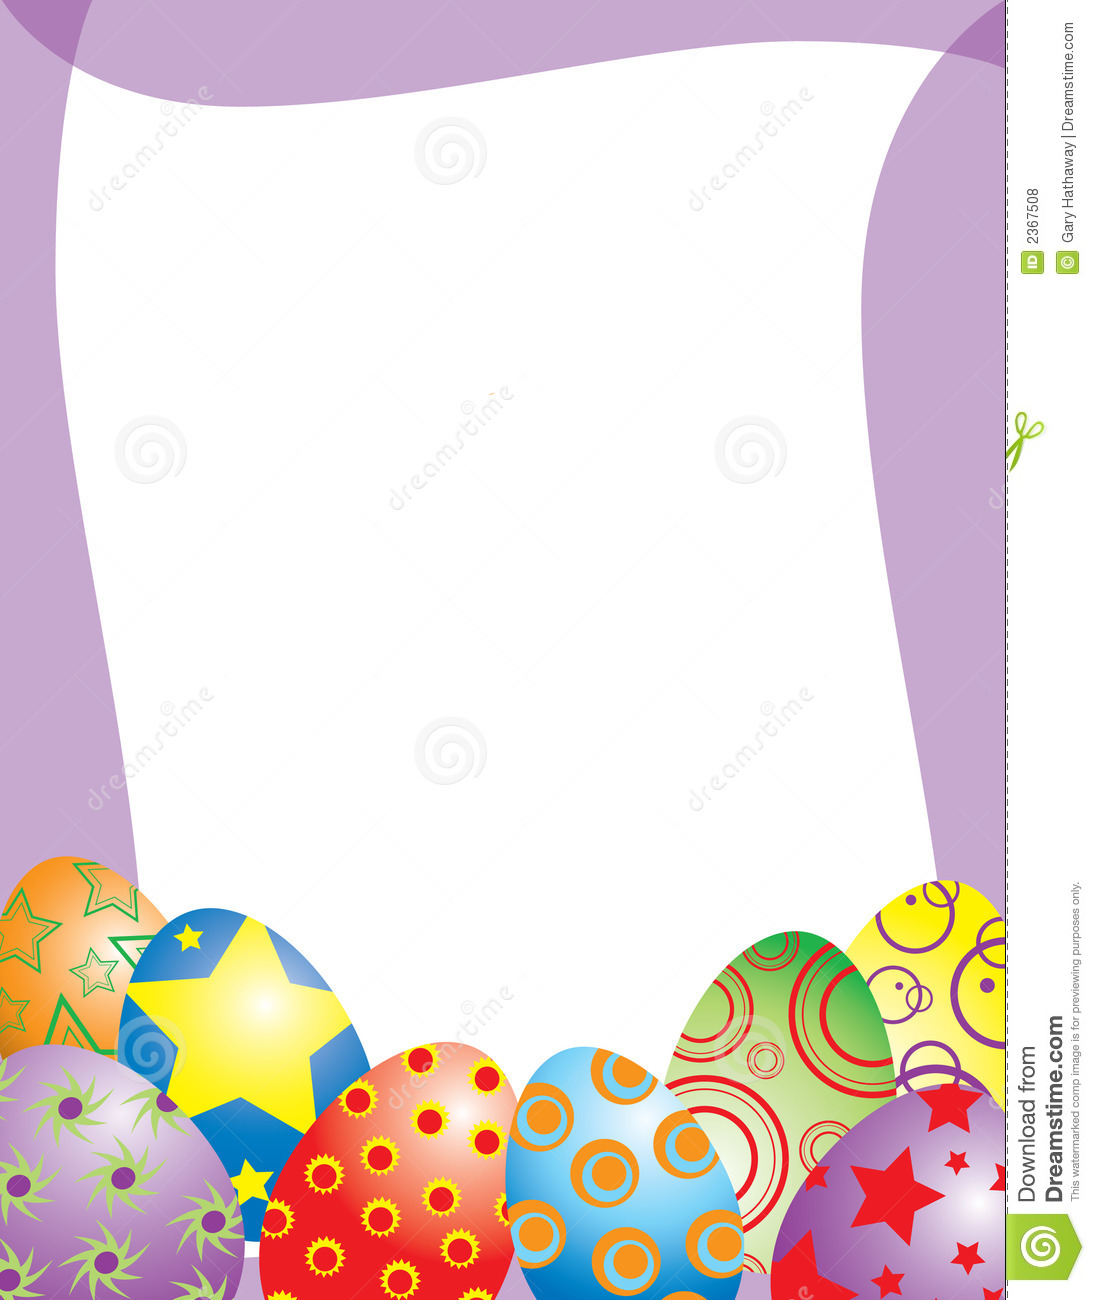 An illustrated frame featuring brightly colored easter eggs perfect